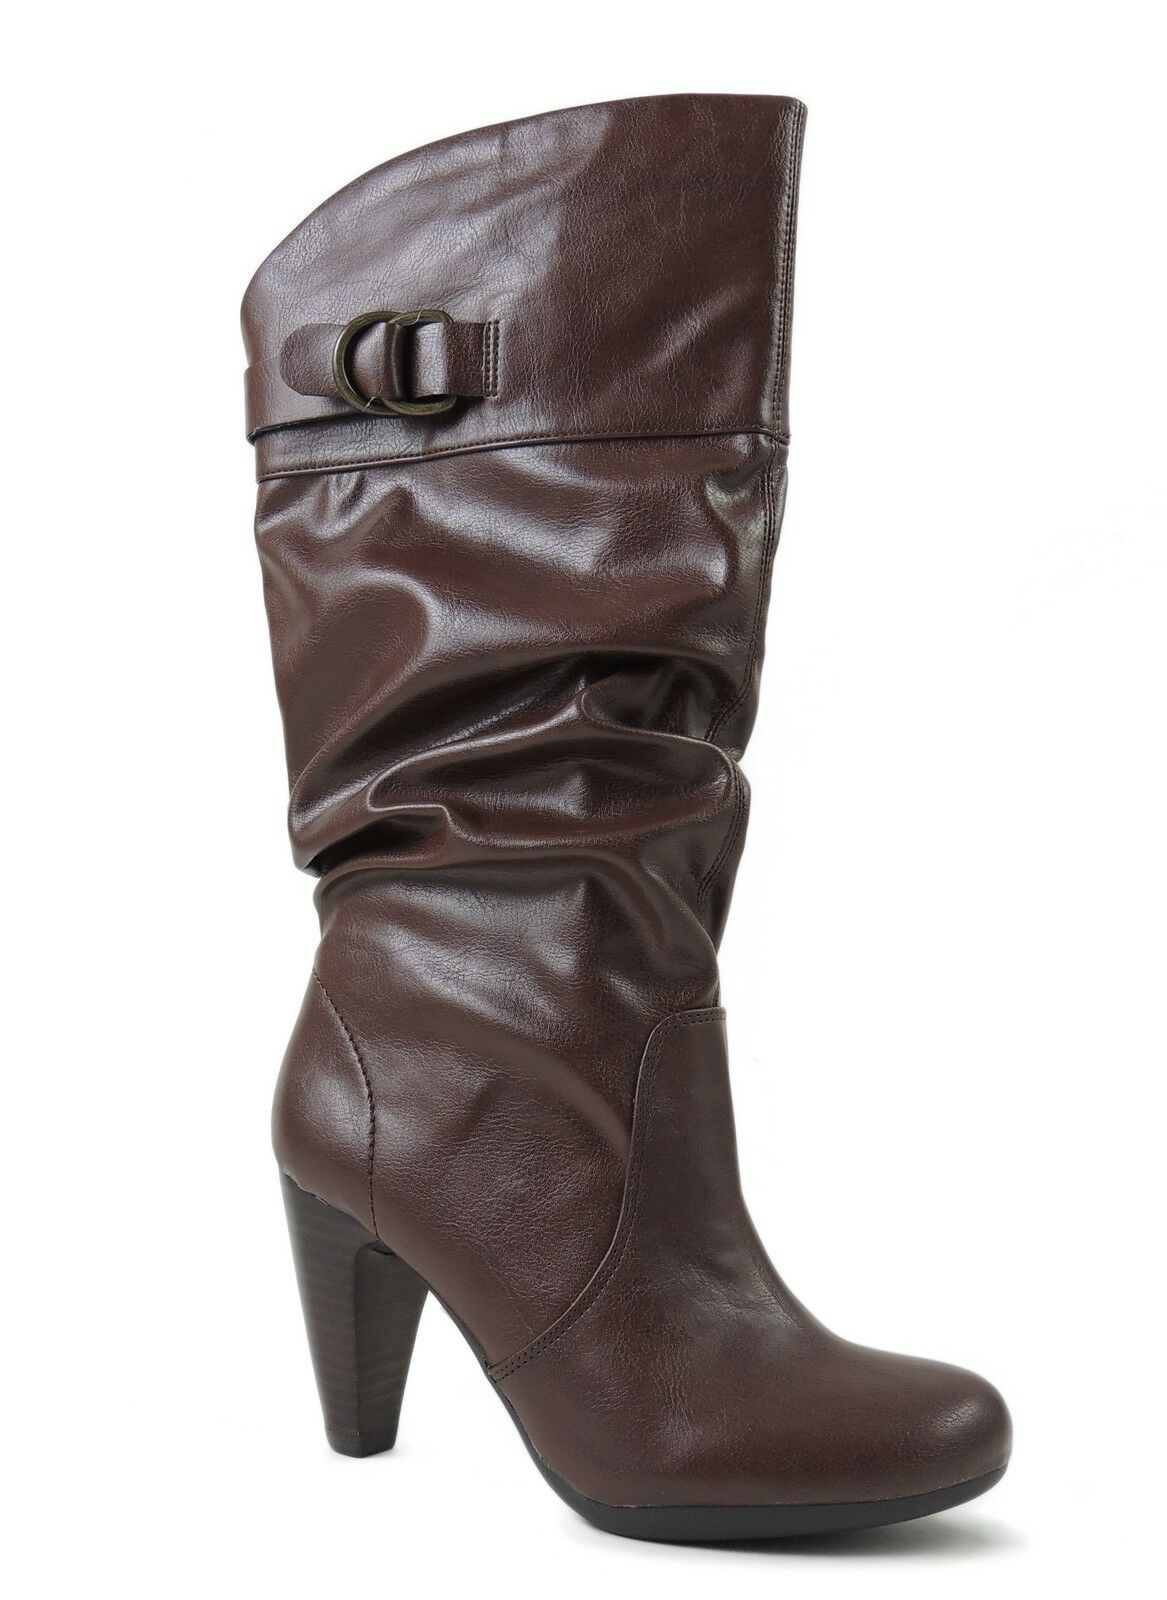 Marc Fisher Women's Signa2 Mid Calf Boot Brown Size 5 M